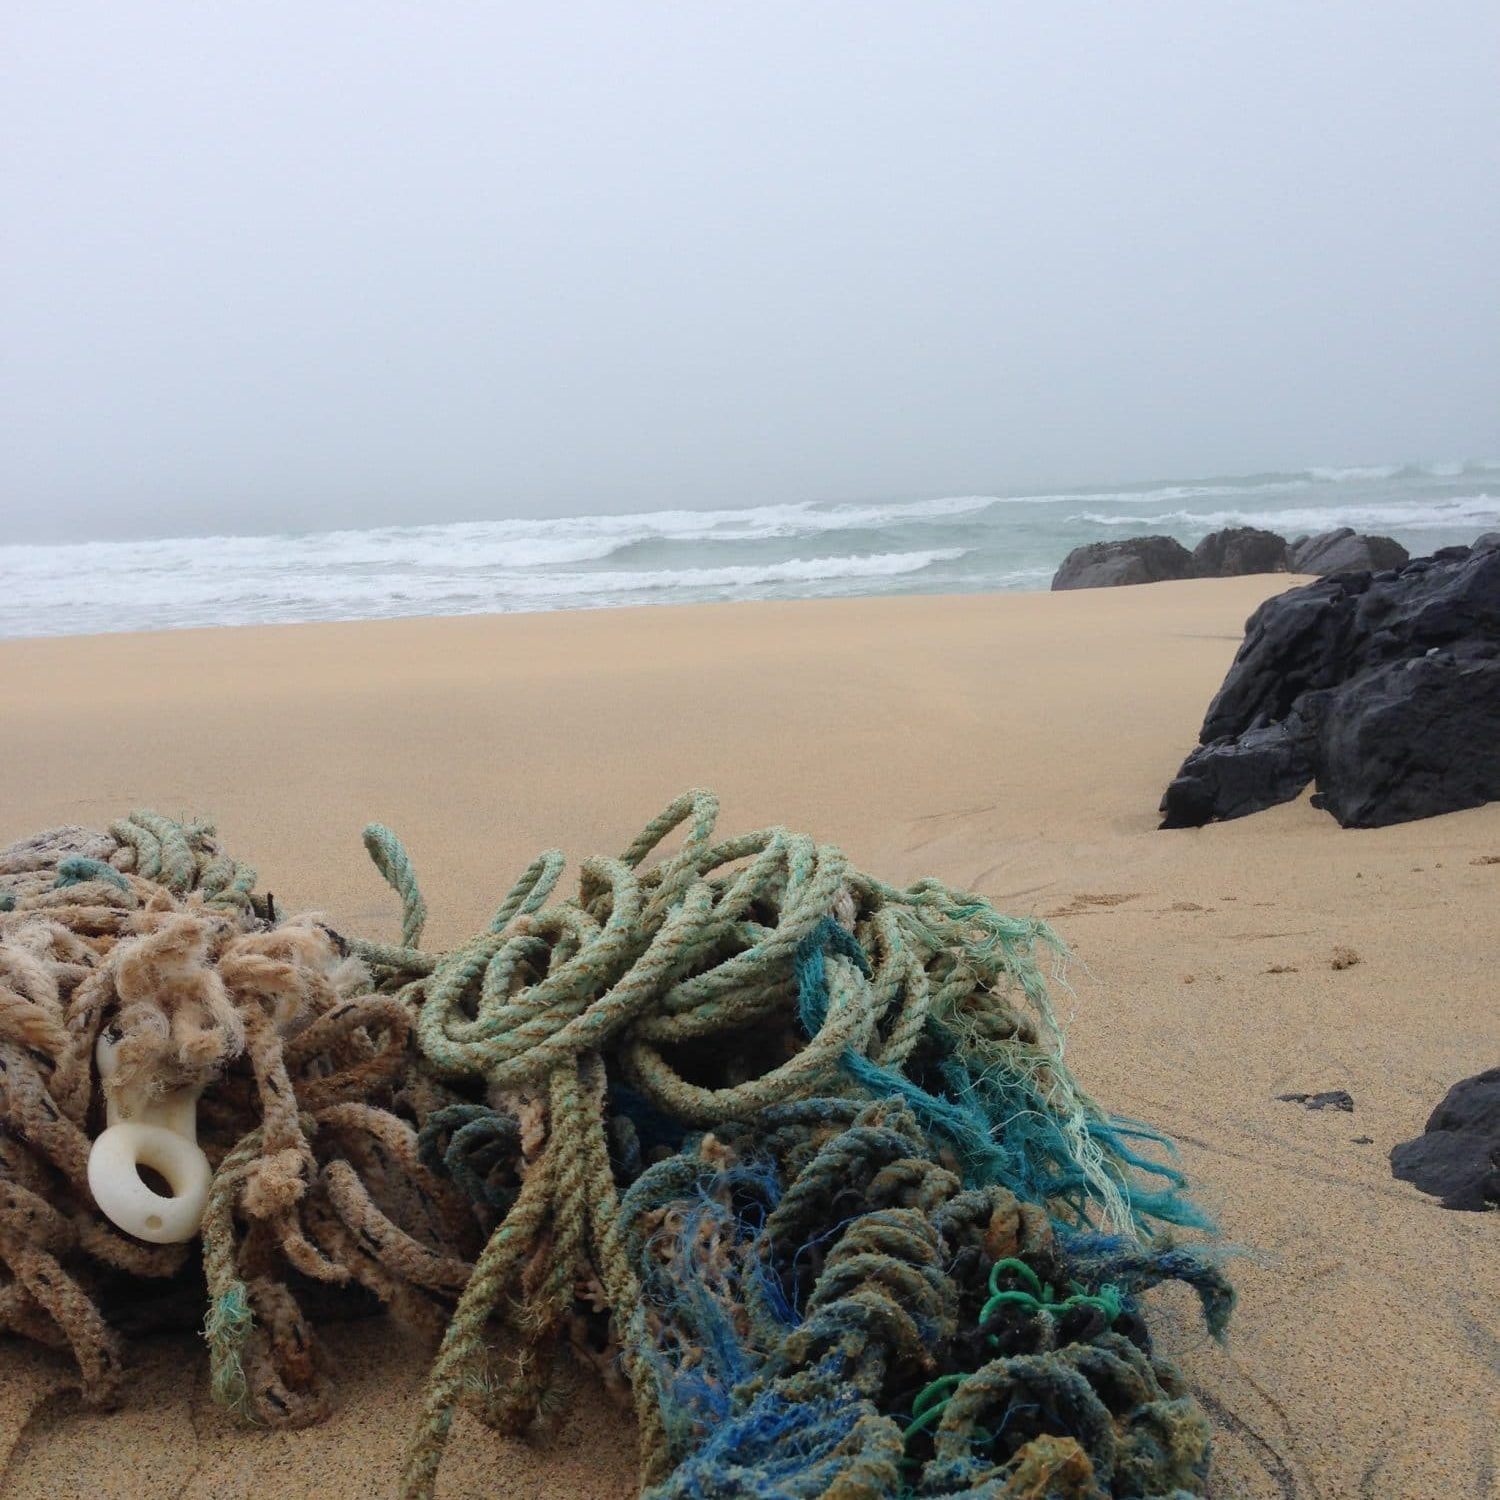 Old fishing rope on a misty beach